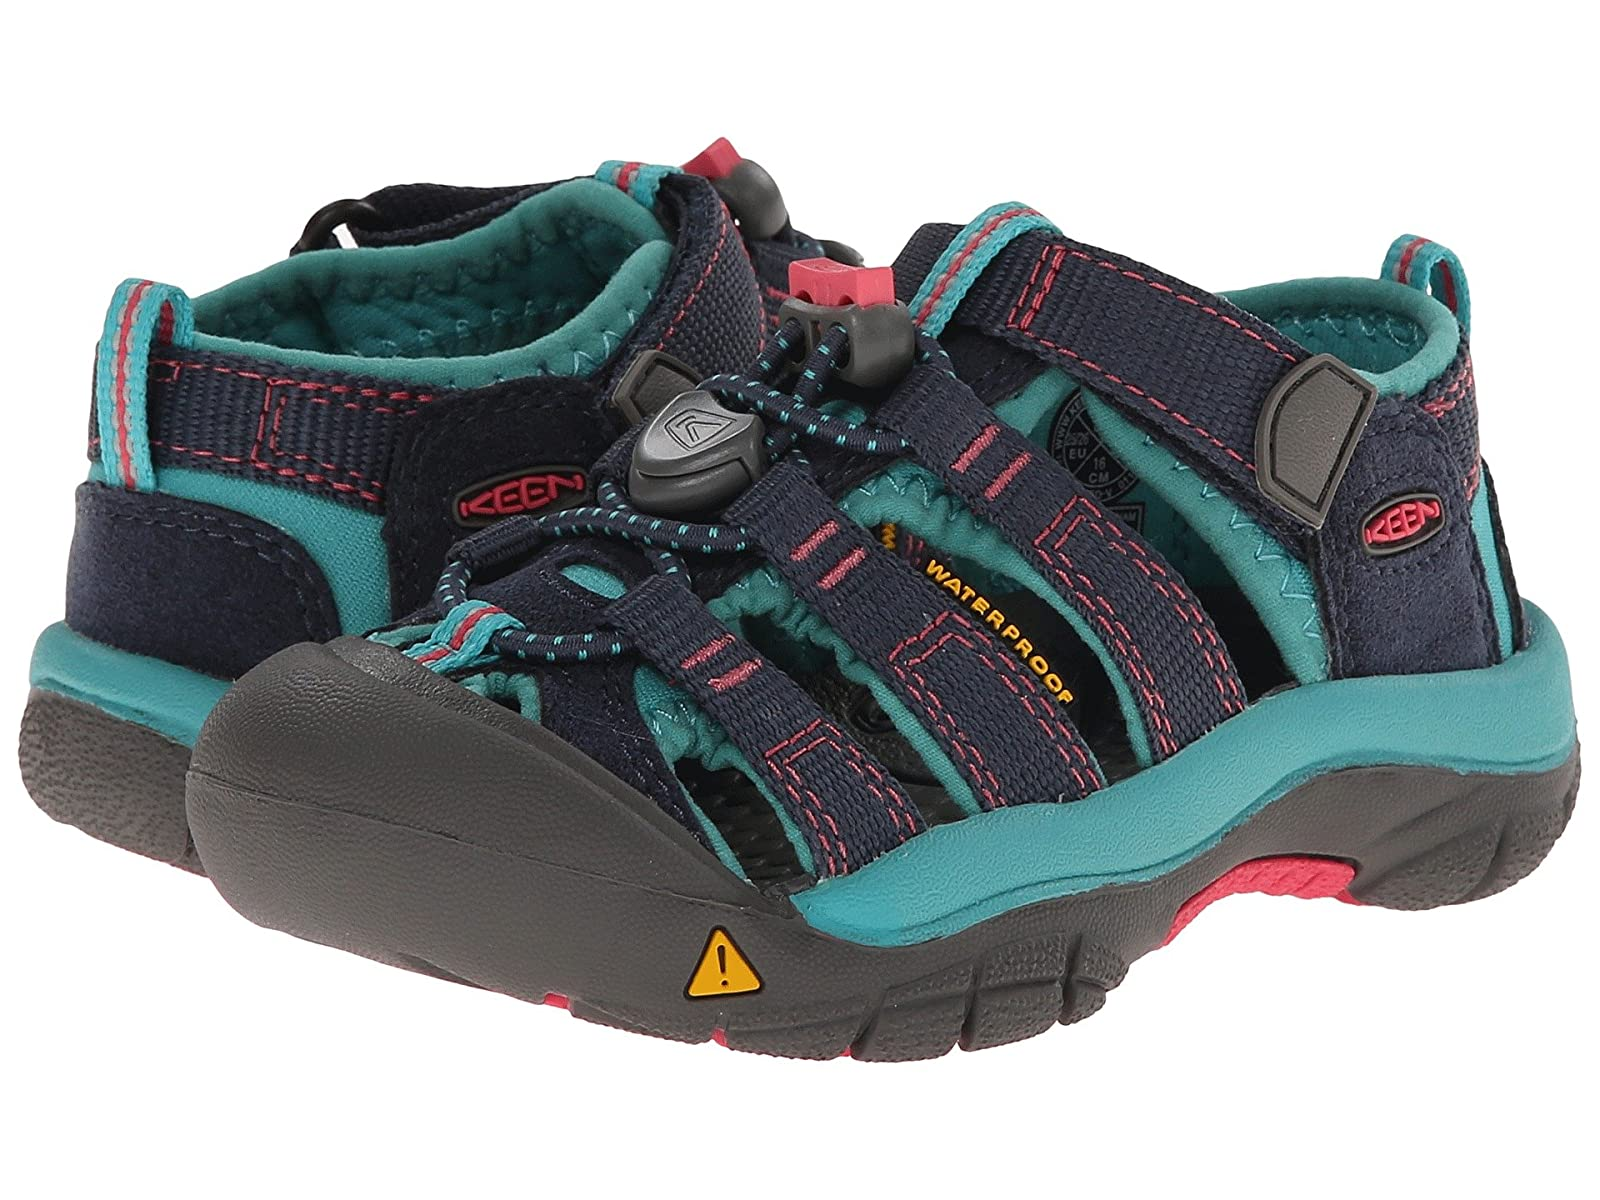 Keen Kids Newport H2 (Toddler/Little Kid)Atmospheric grades have affordable shoes